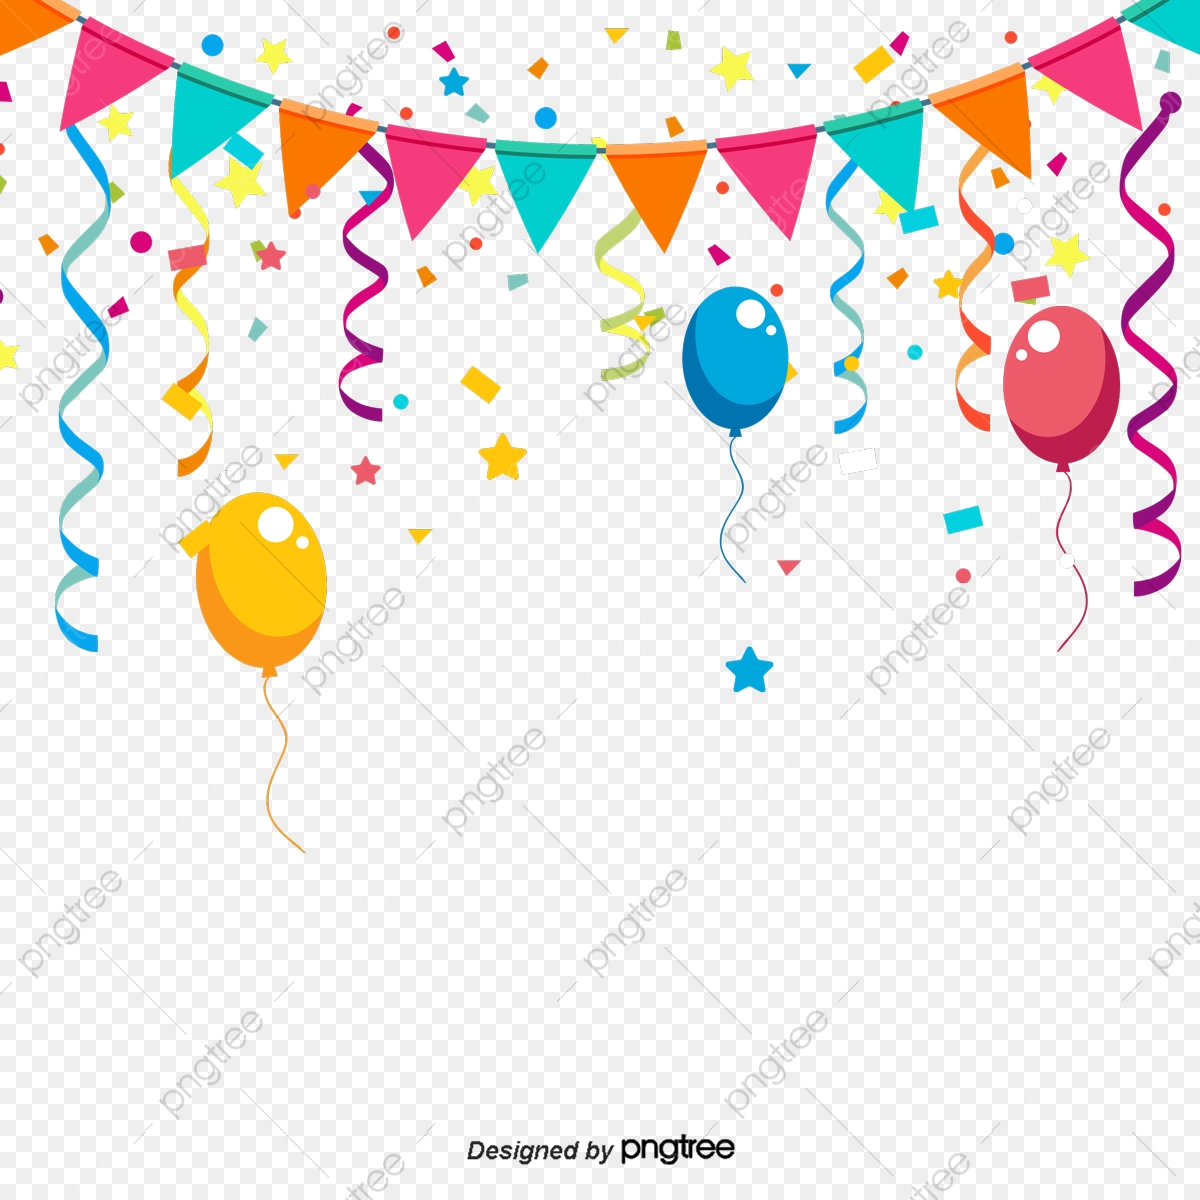 Colorful birthday decorations triangular. Decoration clipart cartoon party